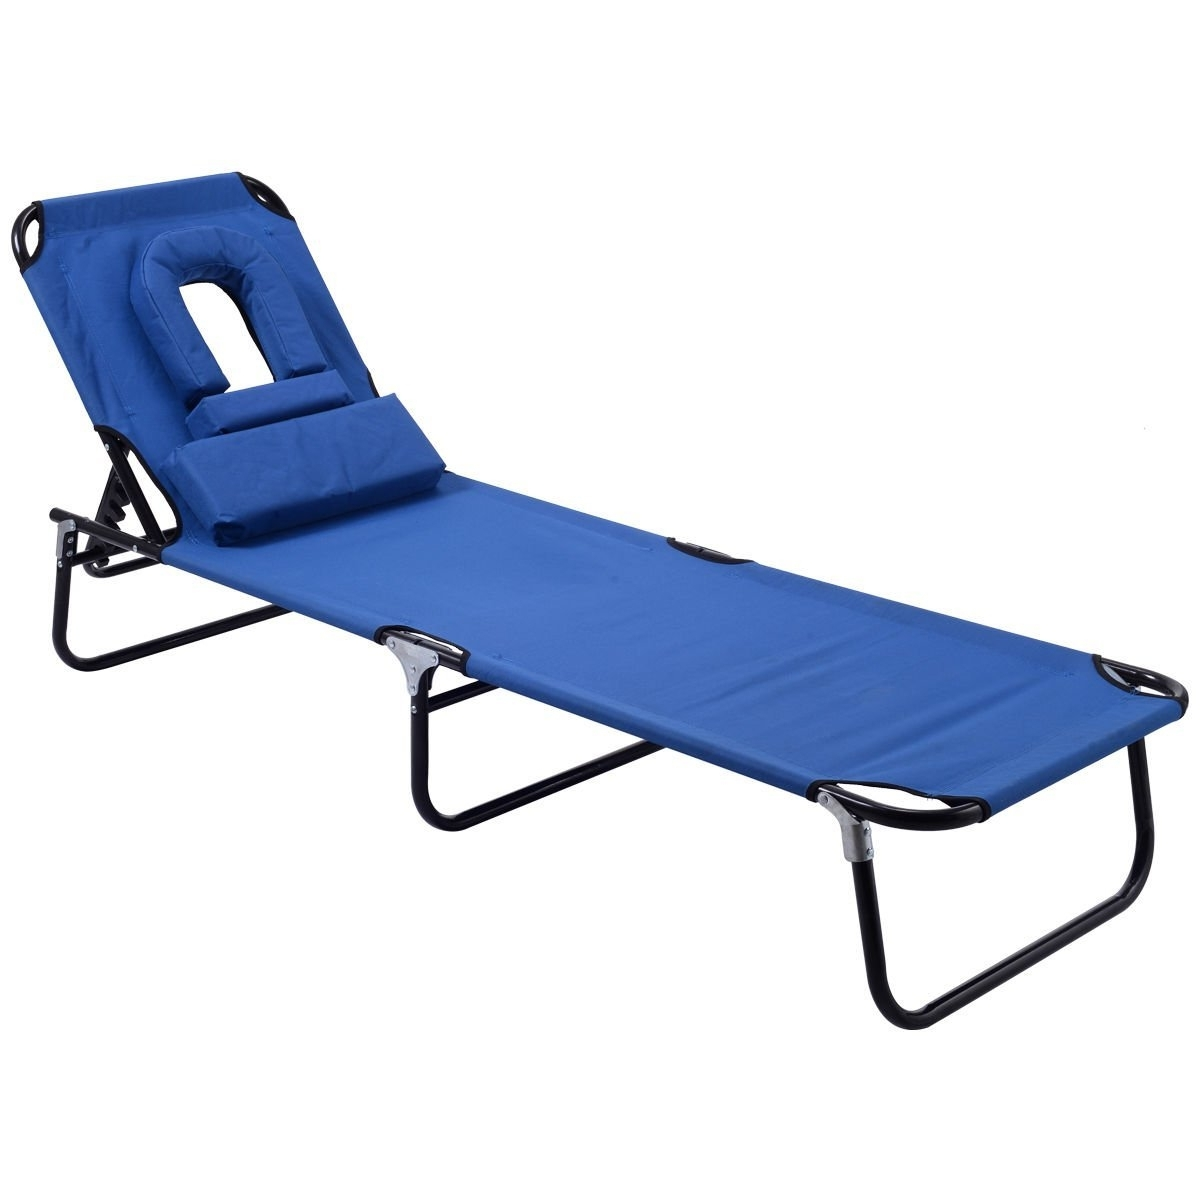 2017 Folding Chaise Lounge Chairs Throughout Amazon: Goplus Folding Chaise Lounge Chair Bed Outdoor Patio (View 1 of 15)